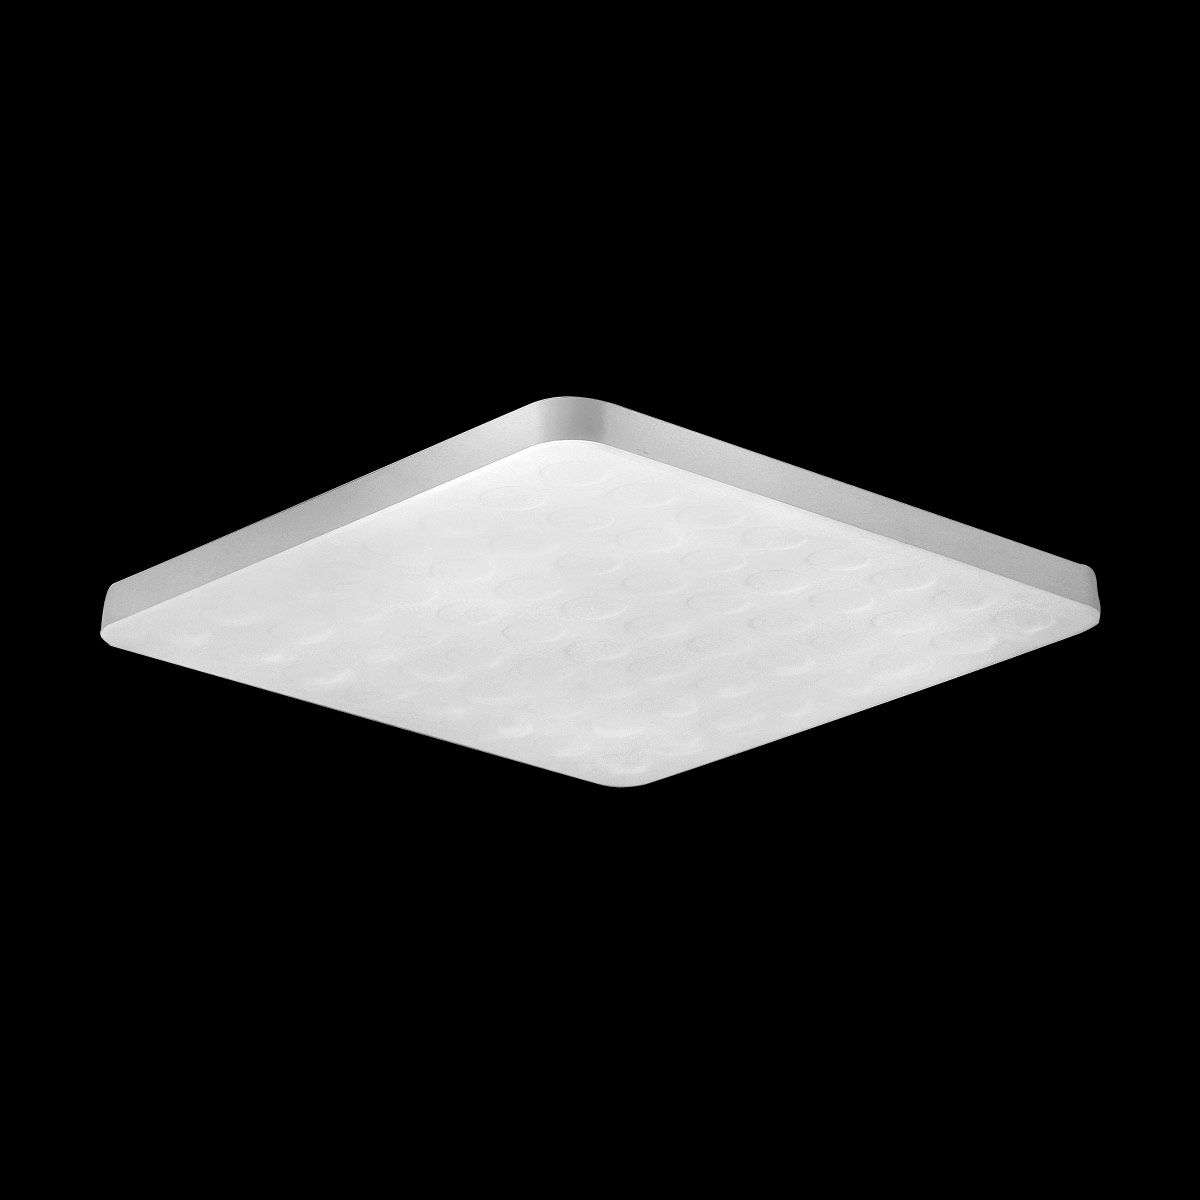 Polly led ceiling lamp 28w small hole lights polly led ceiling lamp 28w small hole 7520033 31 aloadofball Image collections